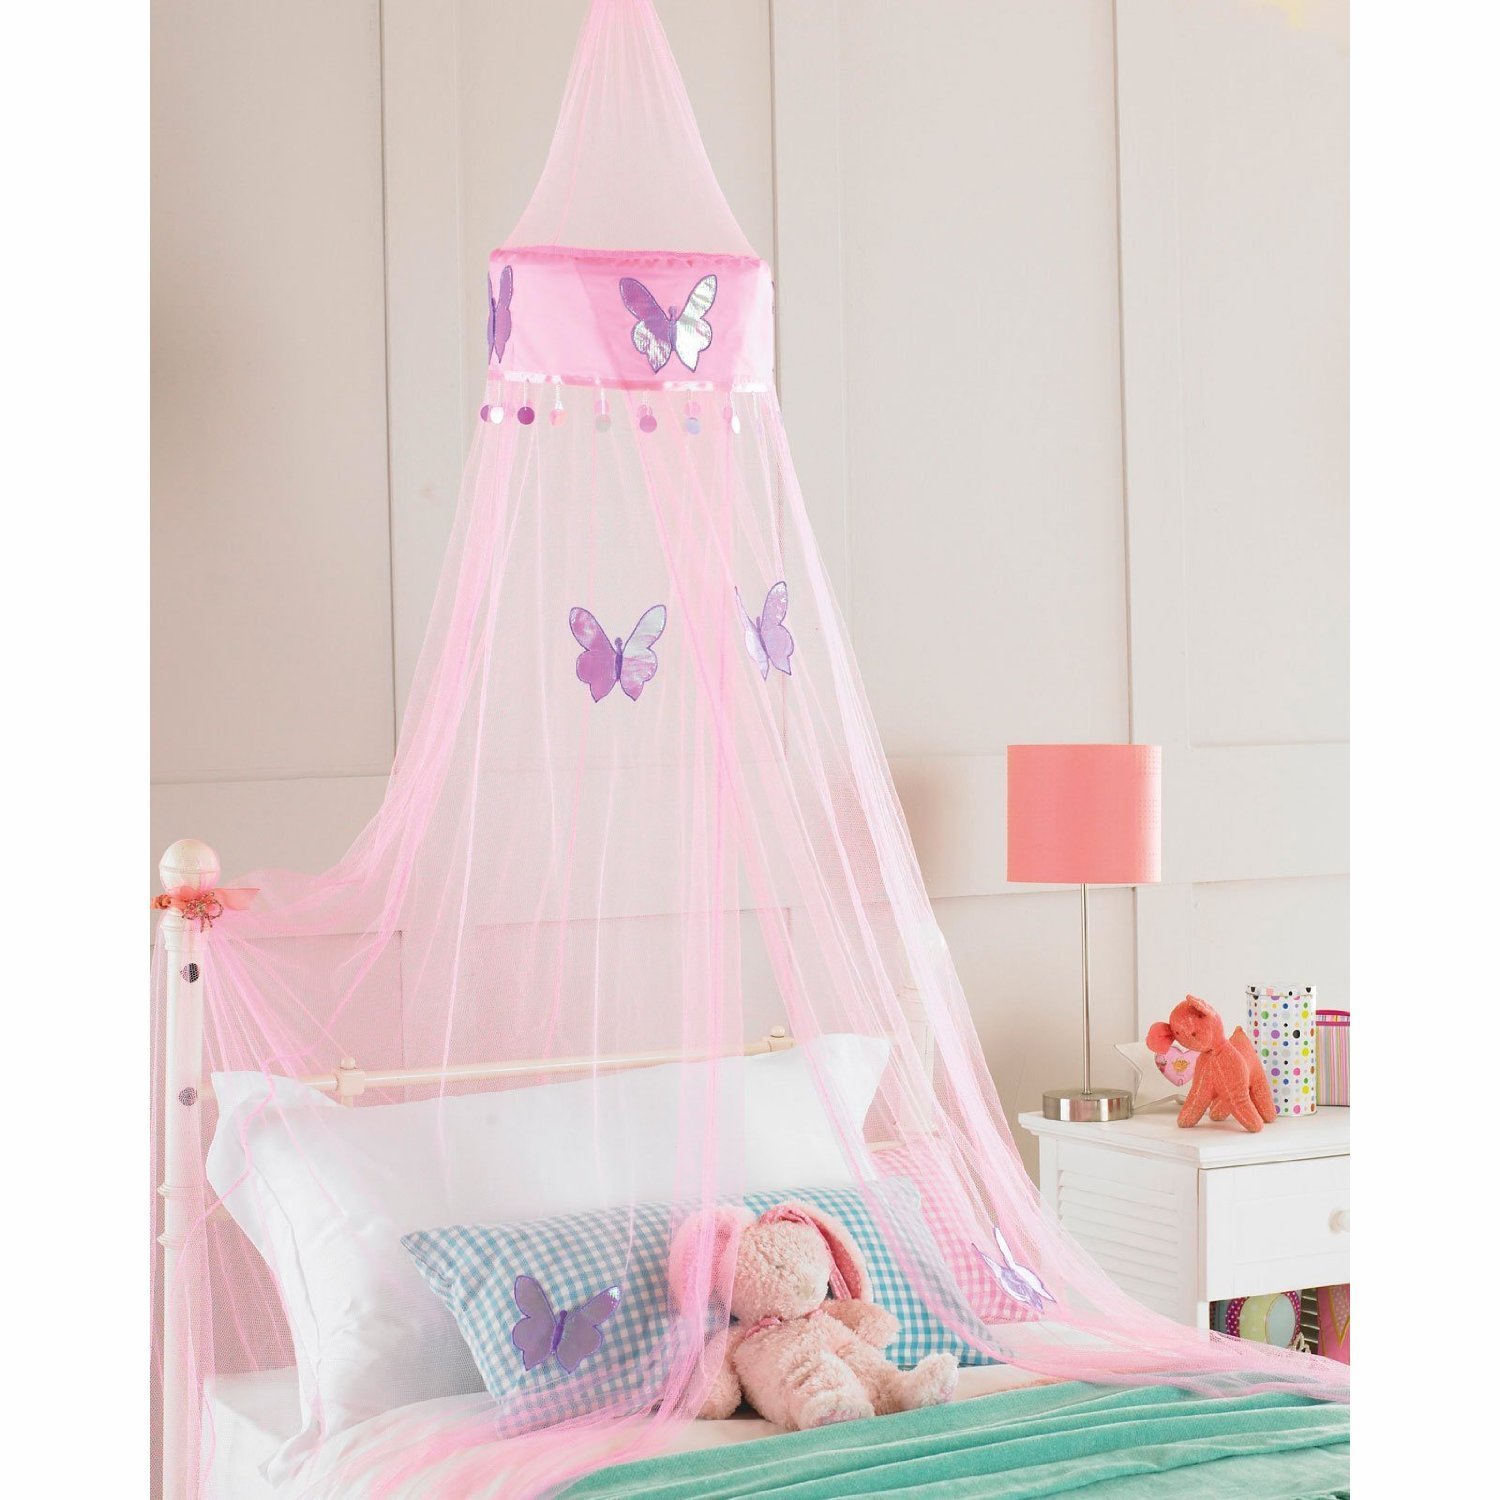 Country Club Childrens Sparkly Butterfly Bed Canopy Netting Girls Insect Fly Mosquito Net